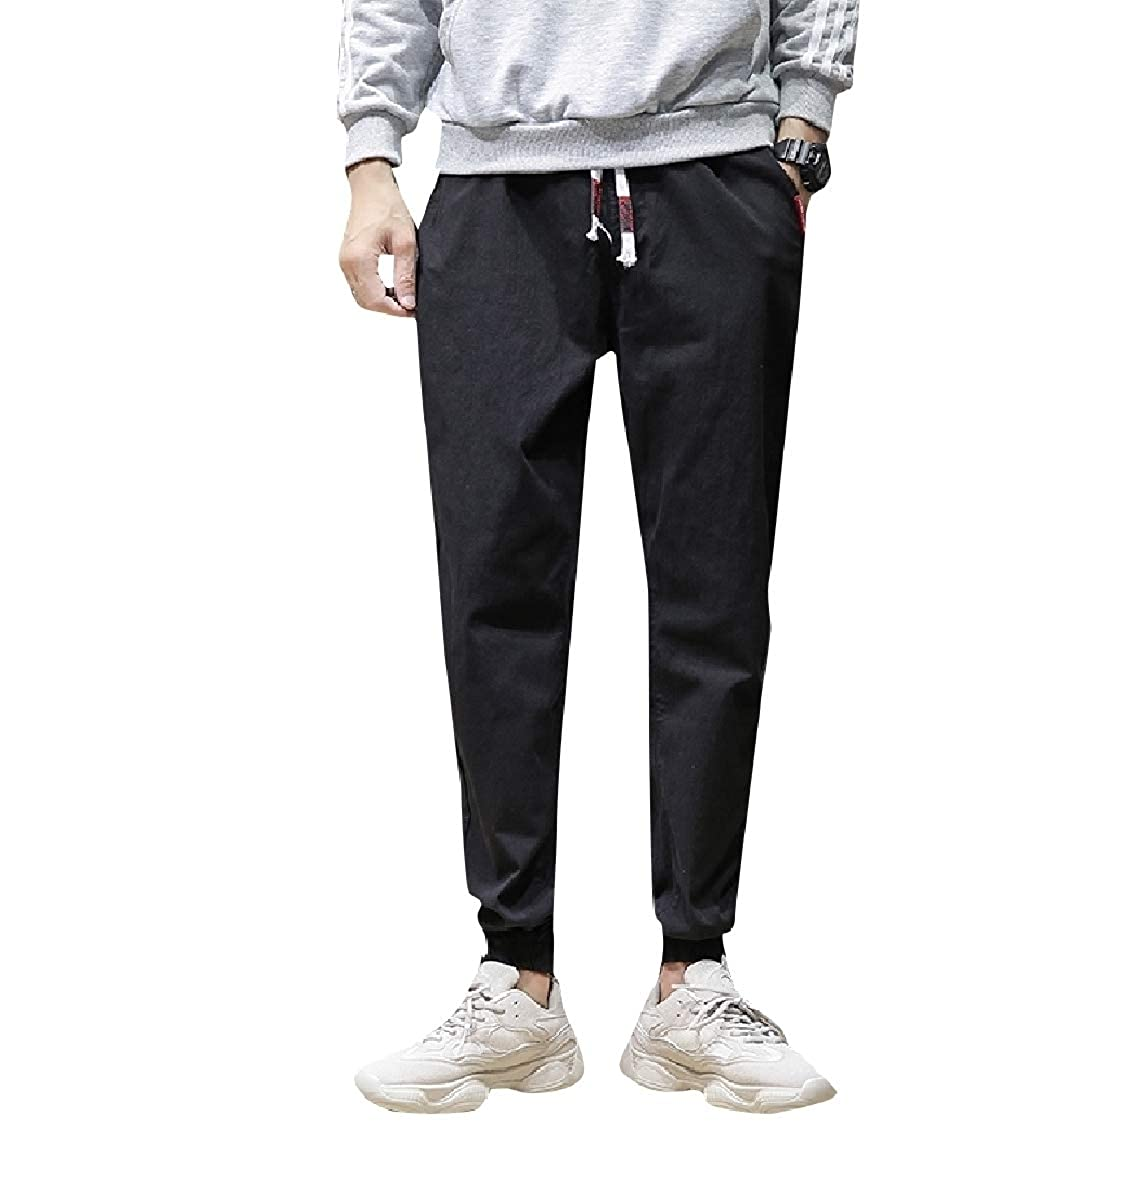 Zimaes-Men Oversize Big Pockets Winter Juniors Chino Pants Trousers